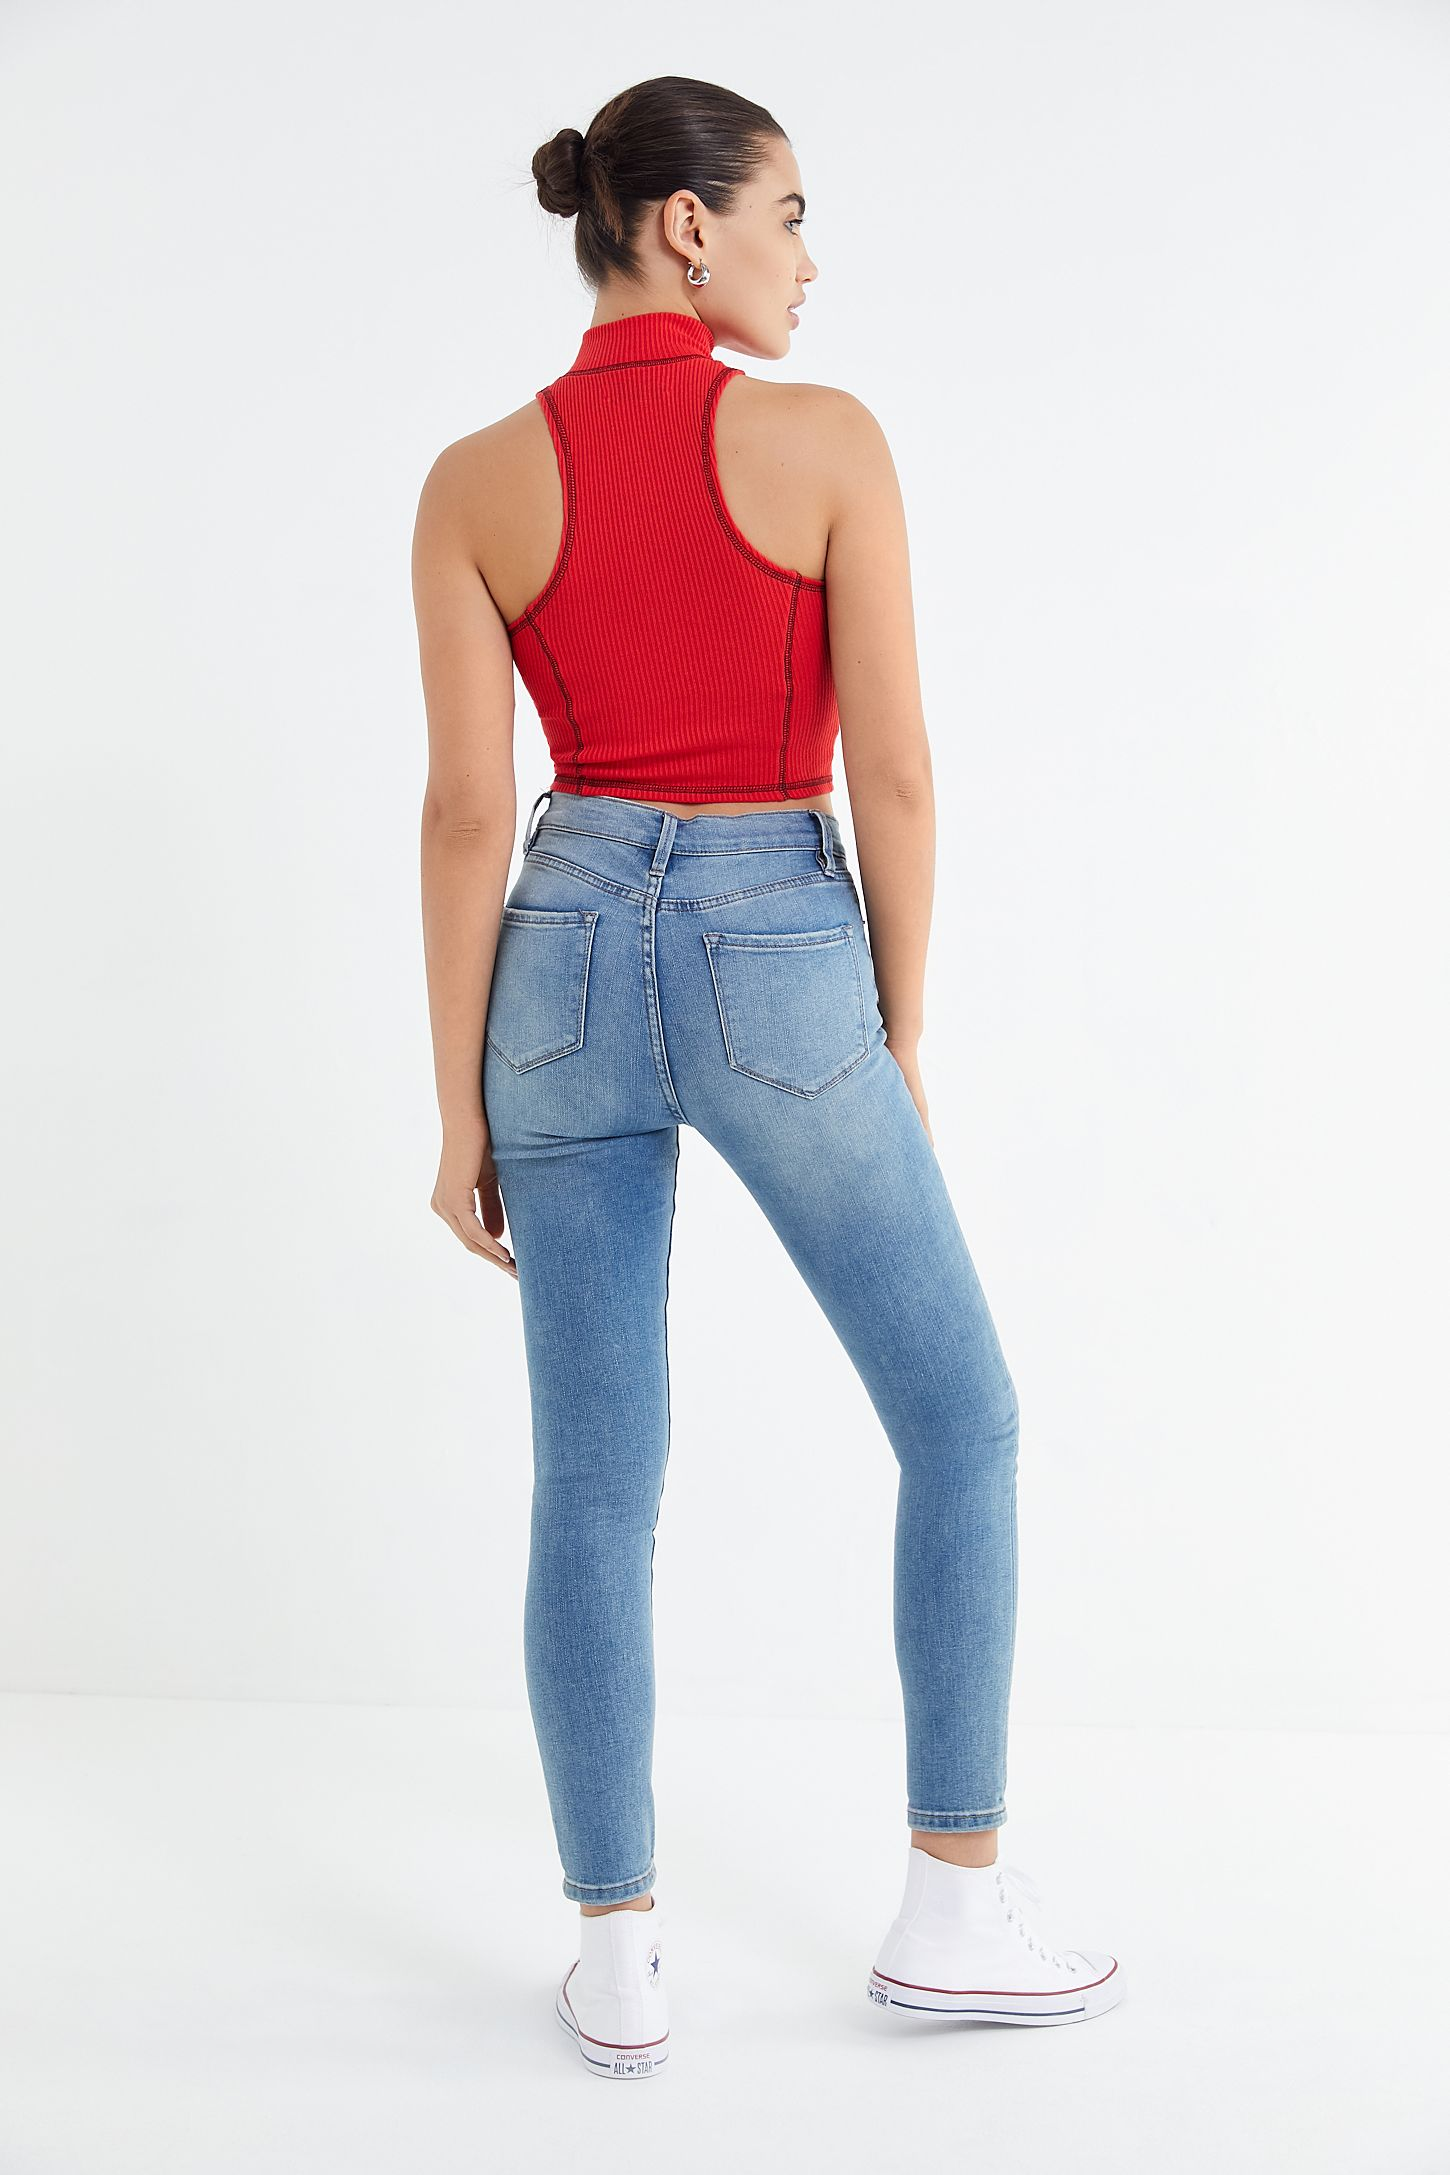 b9d77ade3d BDG Twig High-Rise Skinny Jean - Medium Wash | Urban Outfitters